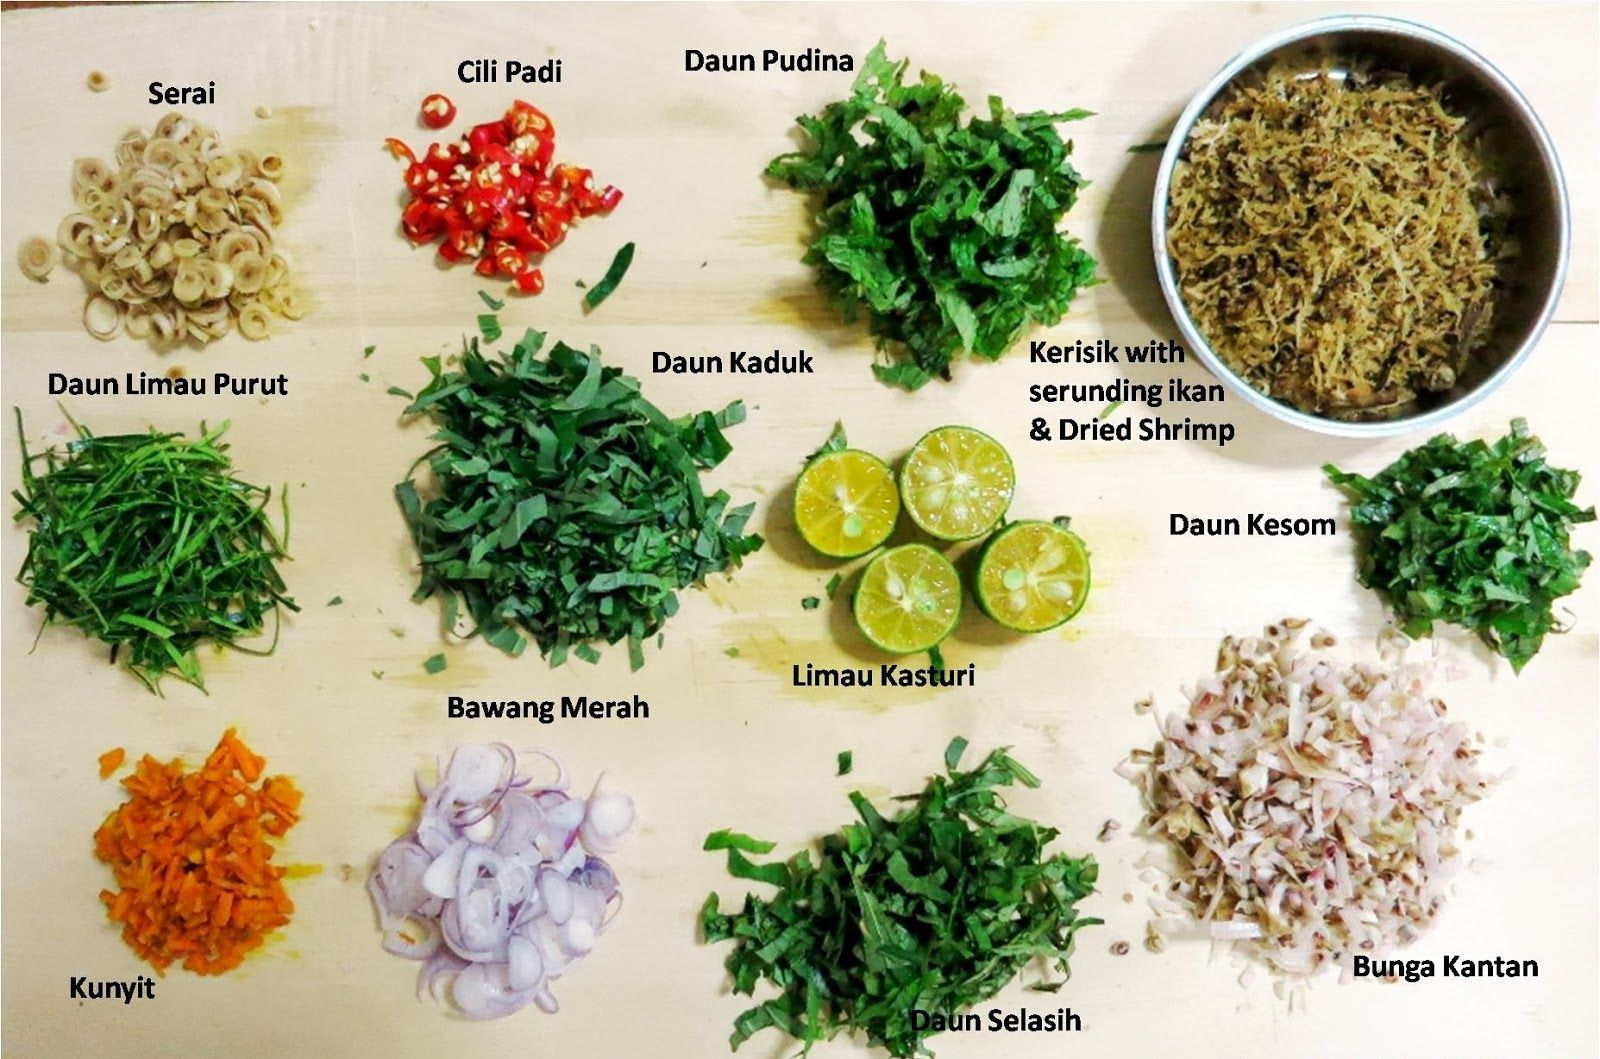 Malay Spices